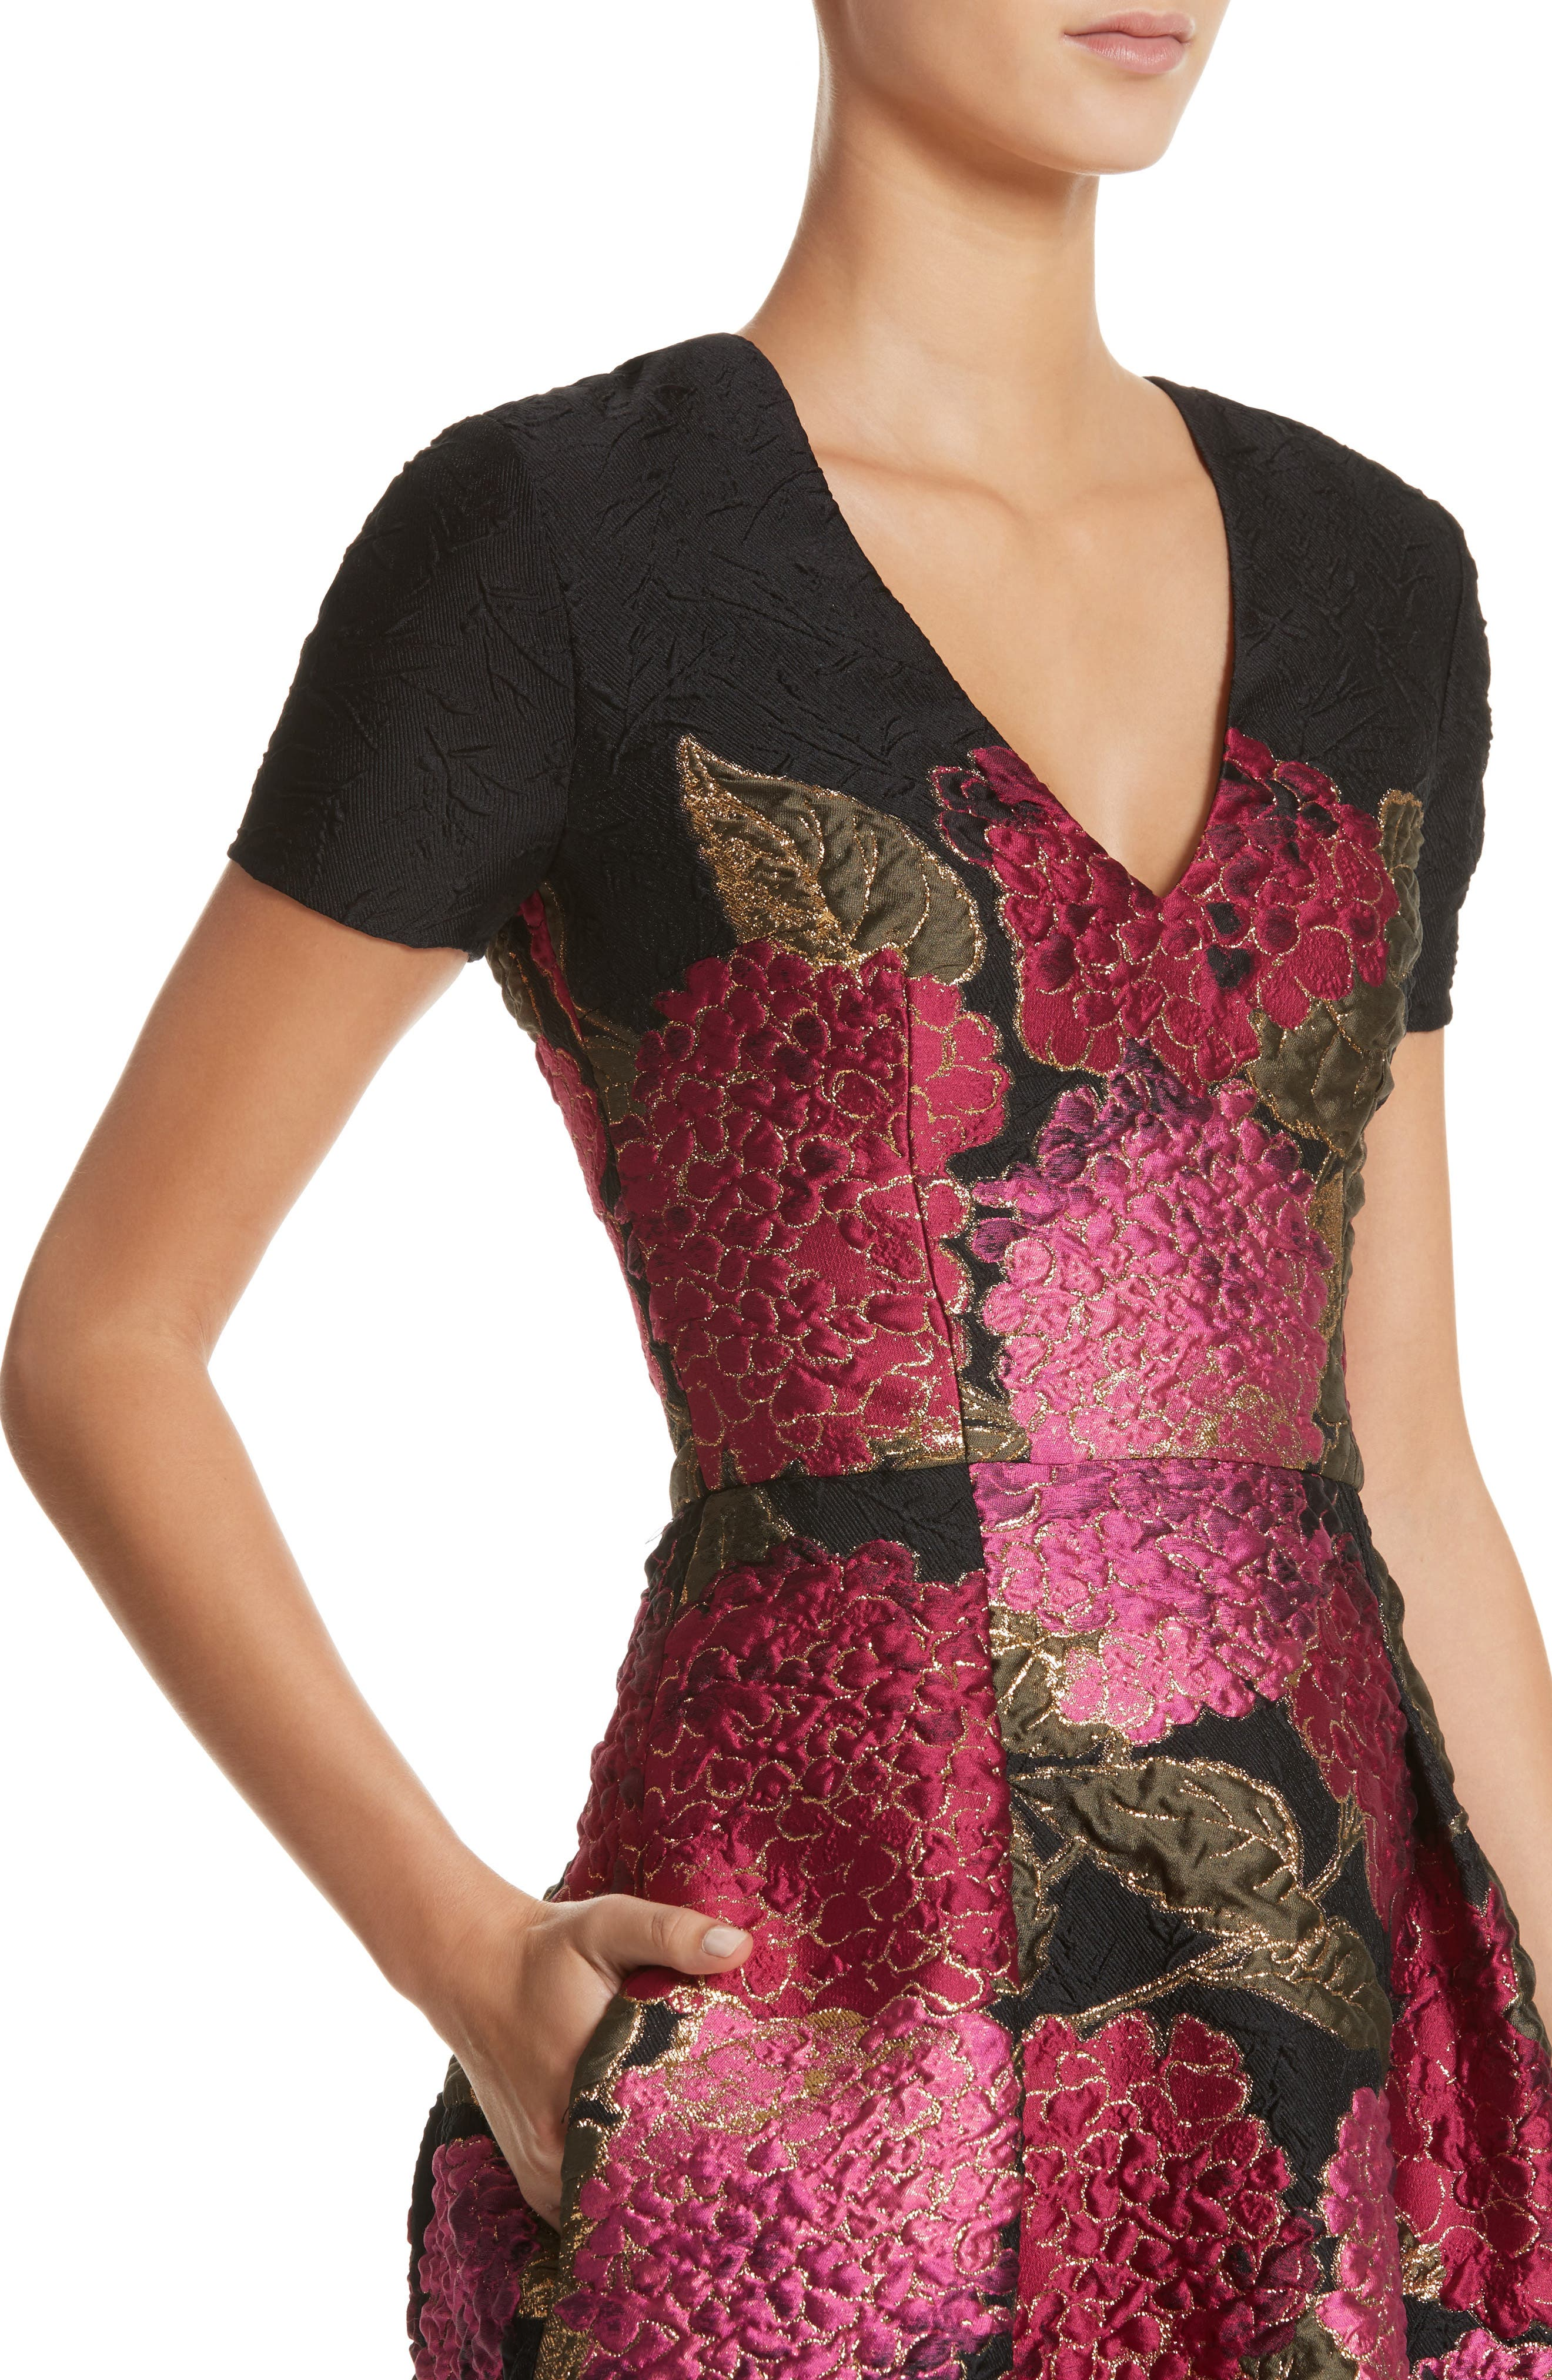 Embroidered Brocade Fit & Flare Dress,                             Alternate thumbnail 4, color,                             001